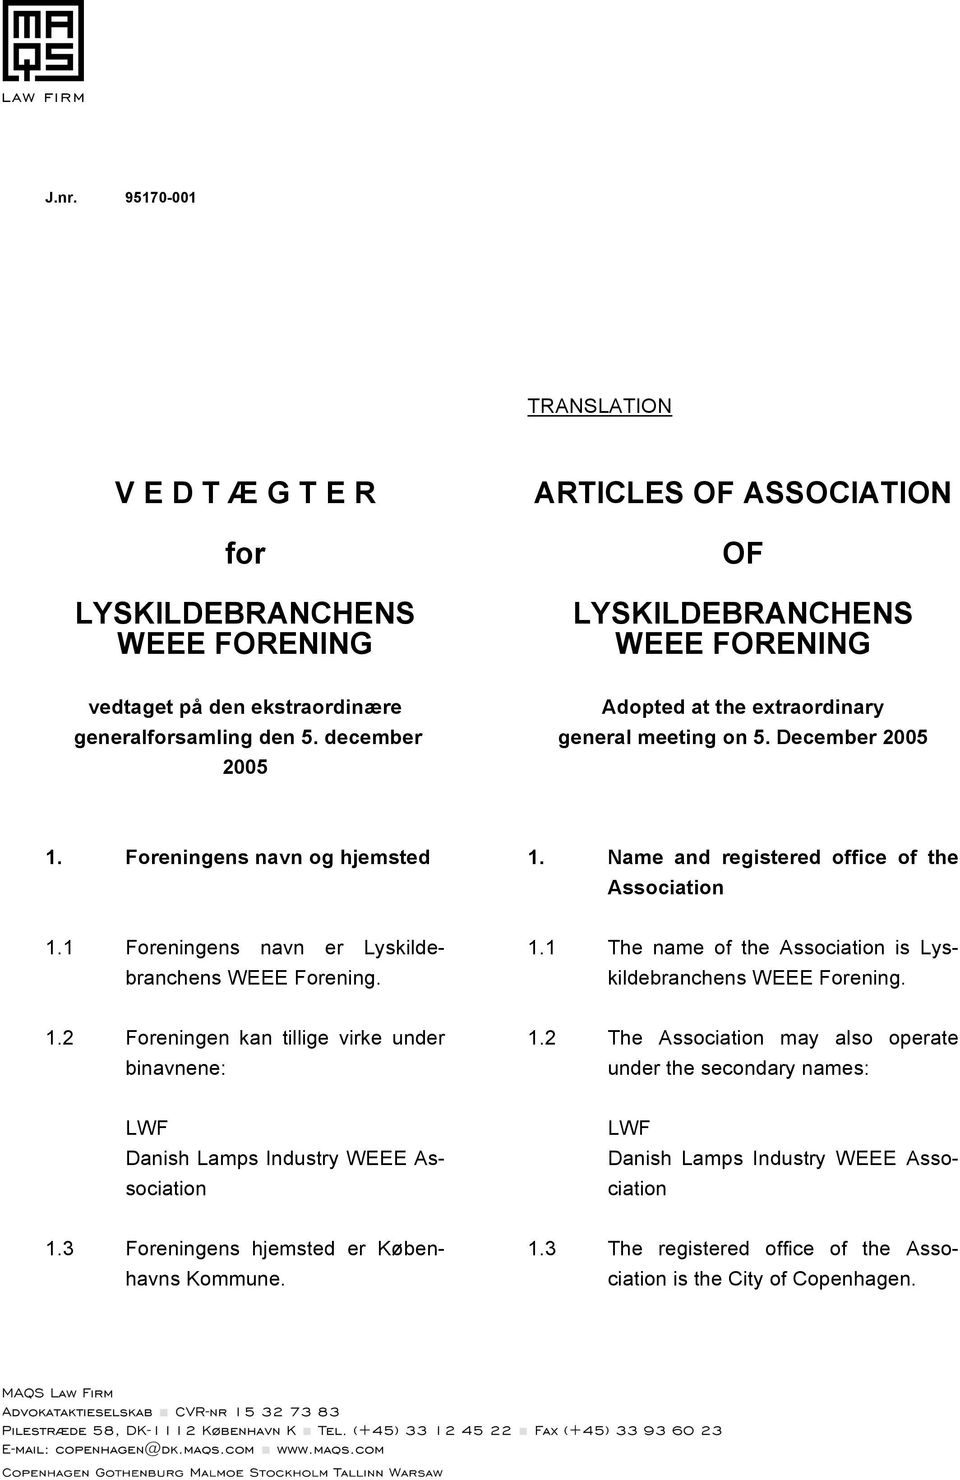 1 Foreningens navn er Lyskildebranchens WEEE Forening. 1.1 The name of the Association is Lyskildebranchens WEEE Forening. 1.2 Foreningen kan tillige virke under binavnene: 1.